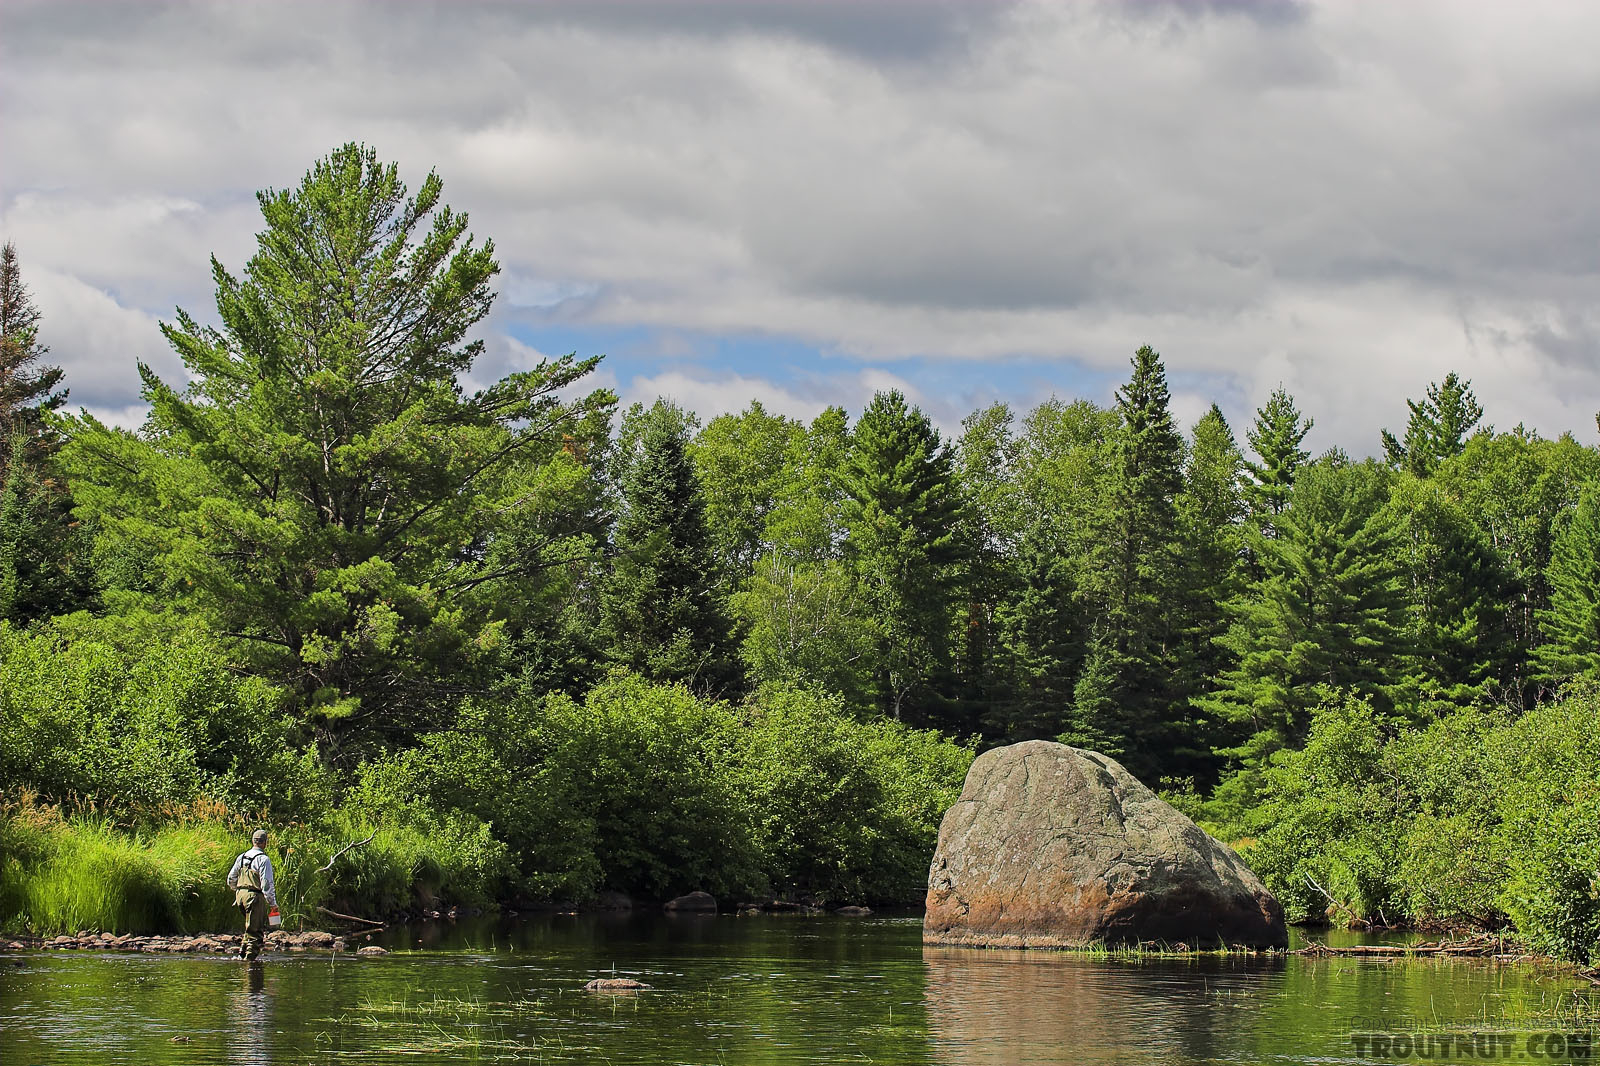 My dad works his way through the shallows of a smallmouth river.  The hole around the large boulder might shelter bass in normal water, but we floated this stretch during a prolonged drought and the fish had left the shallows. From the West Fork of the Chippewa River in Wisconsin.